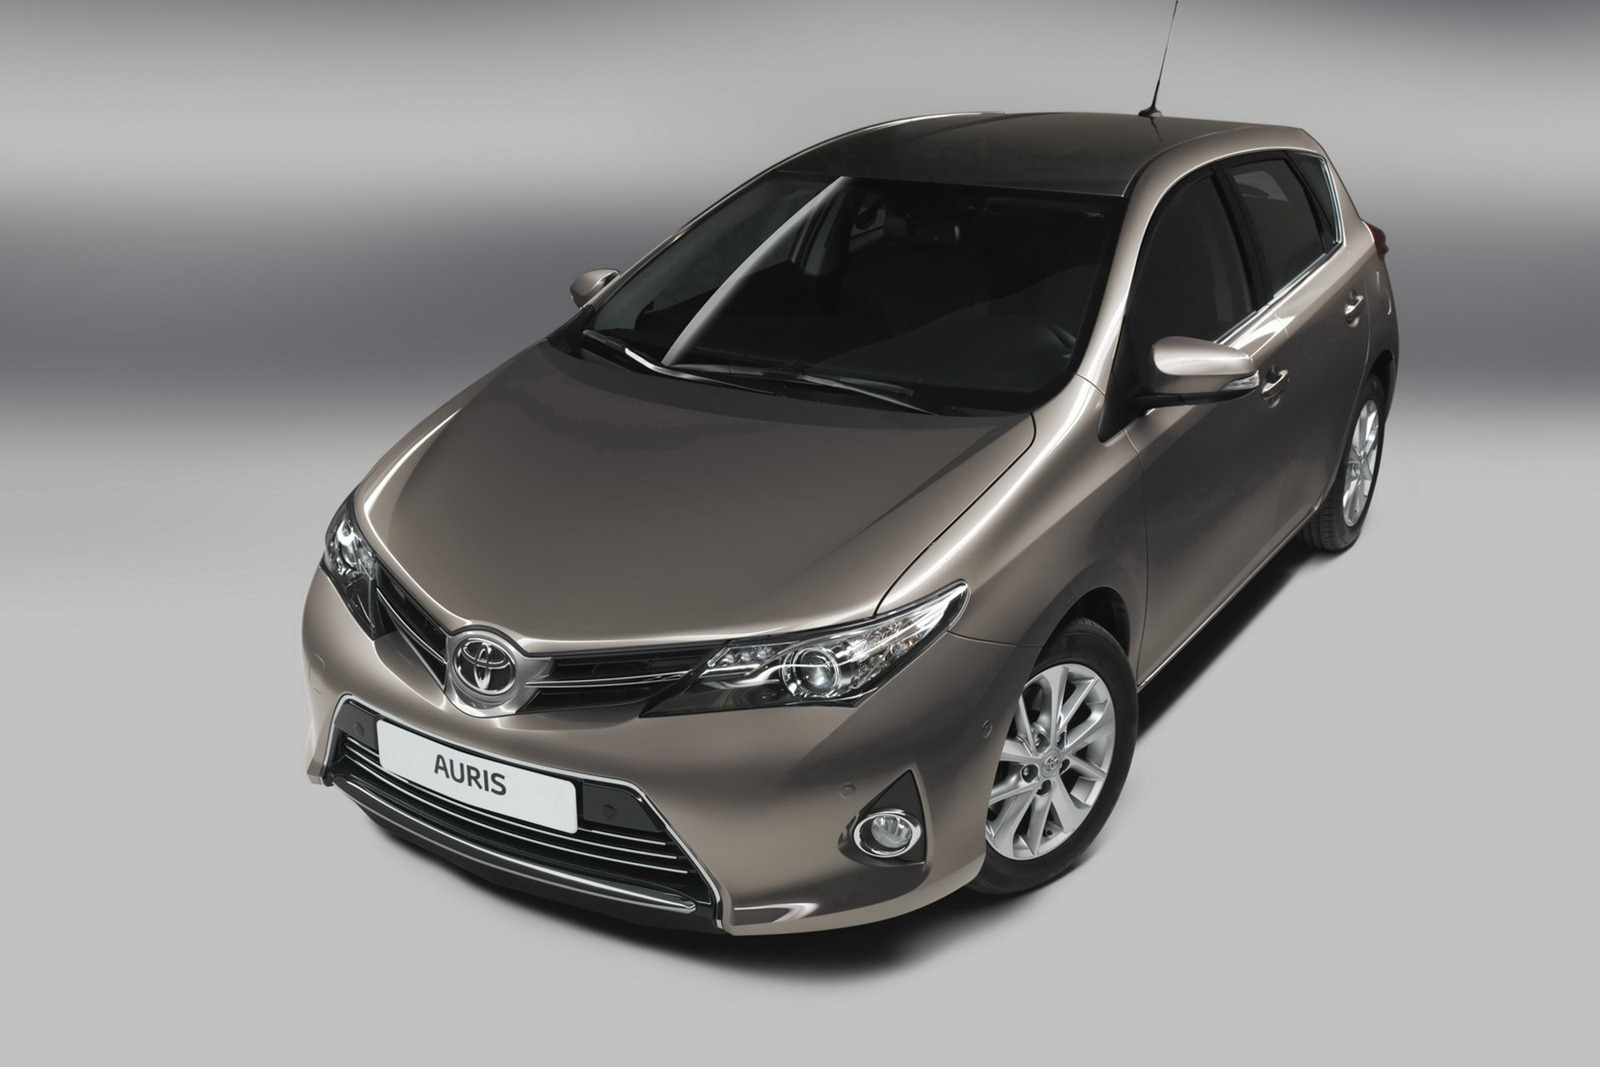 2013 toyota auris c segment hatchback unveiled image 126256. Black Bedroom Furniture Sets. Home Design Ideas